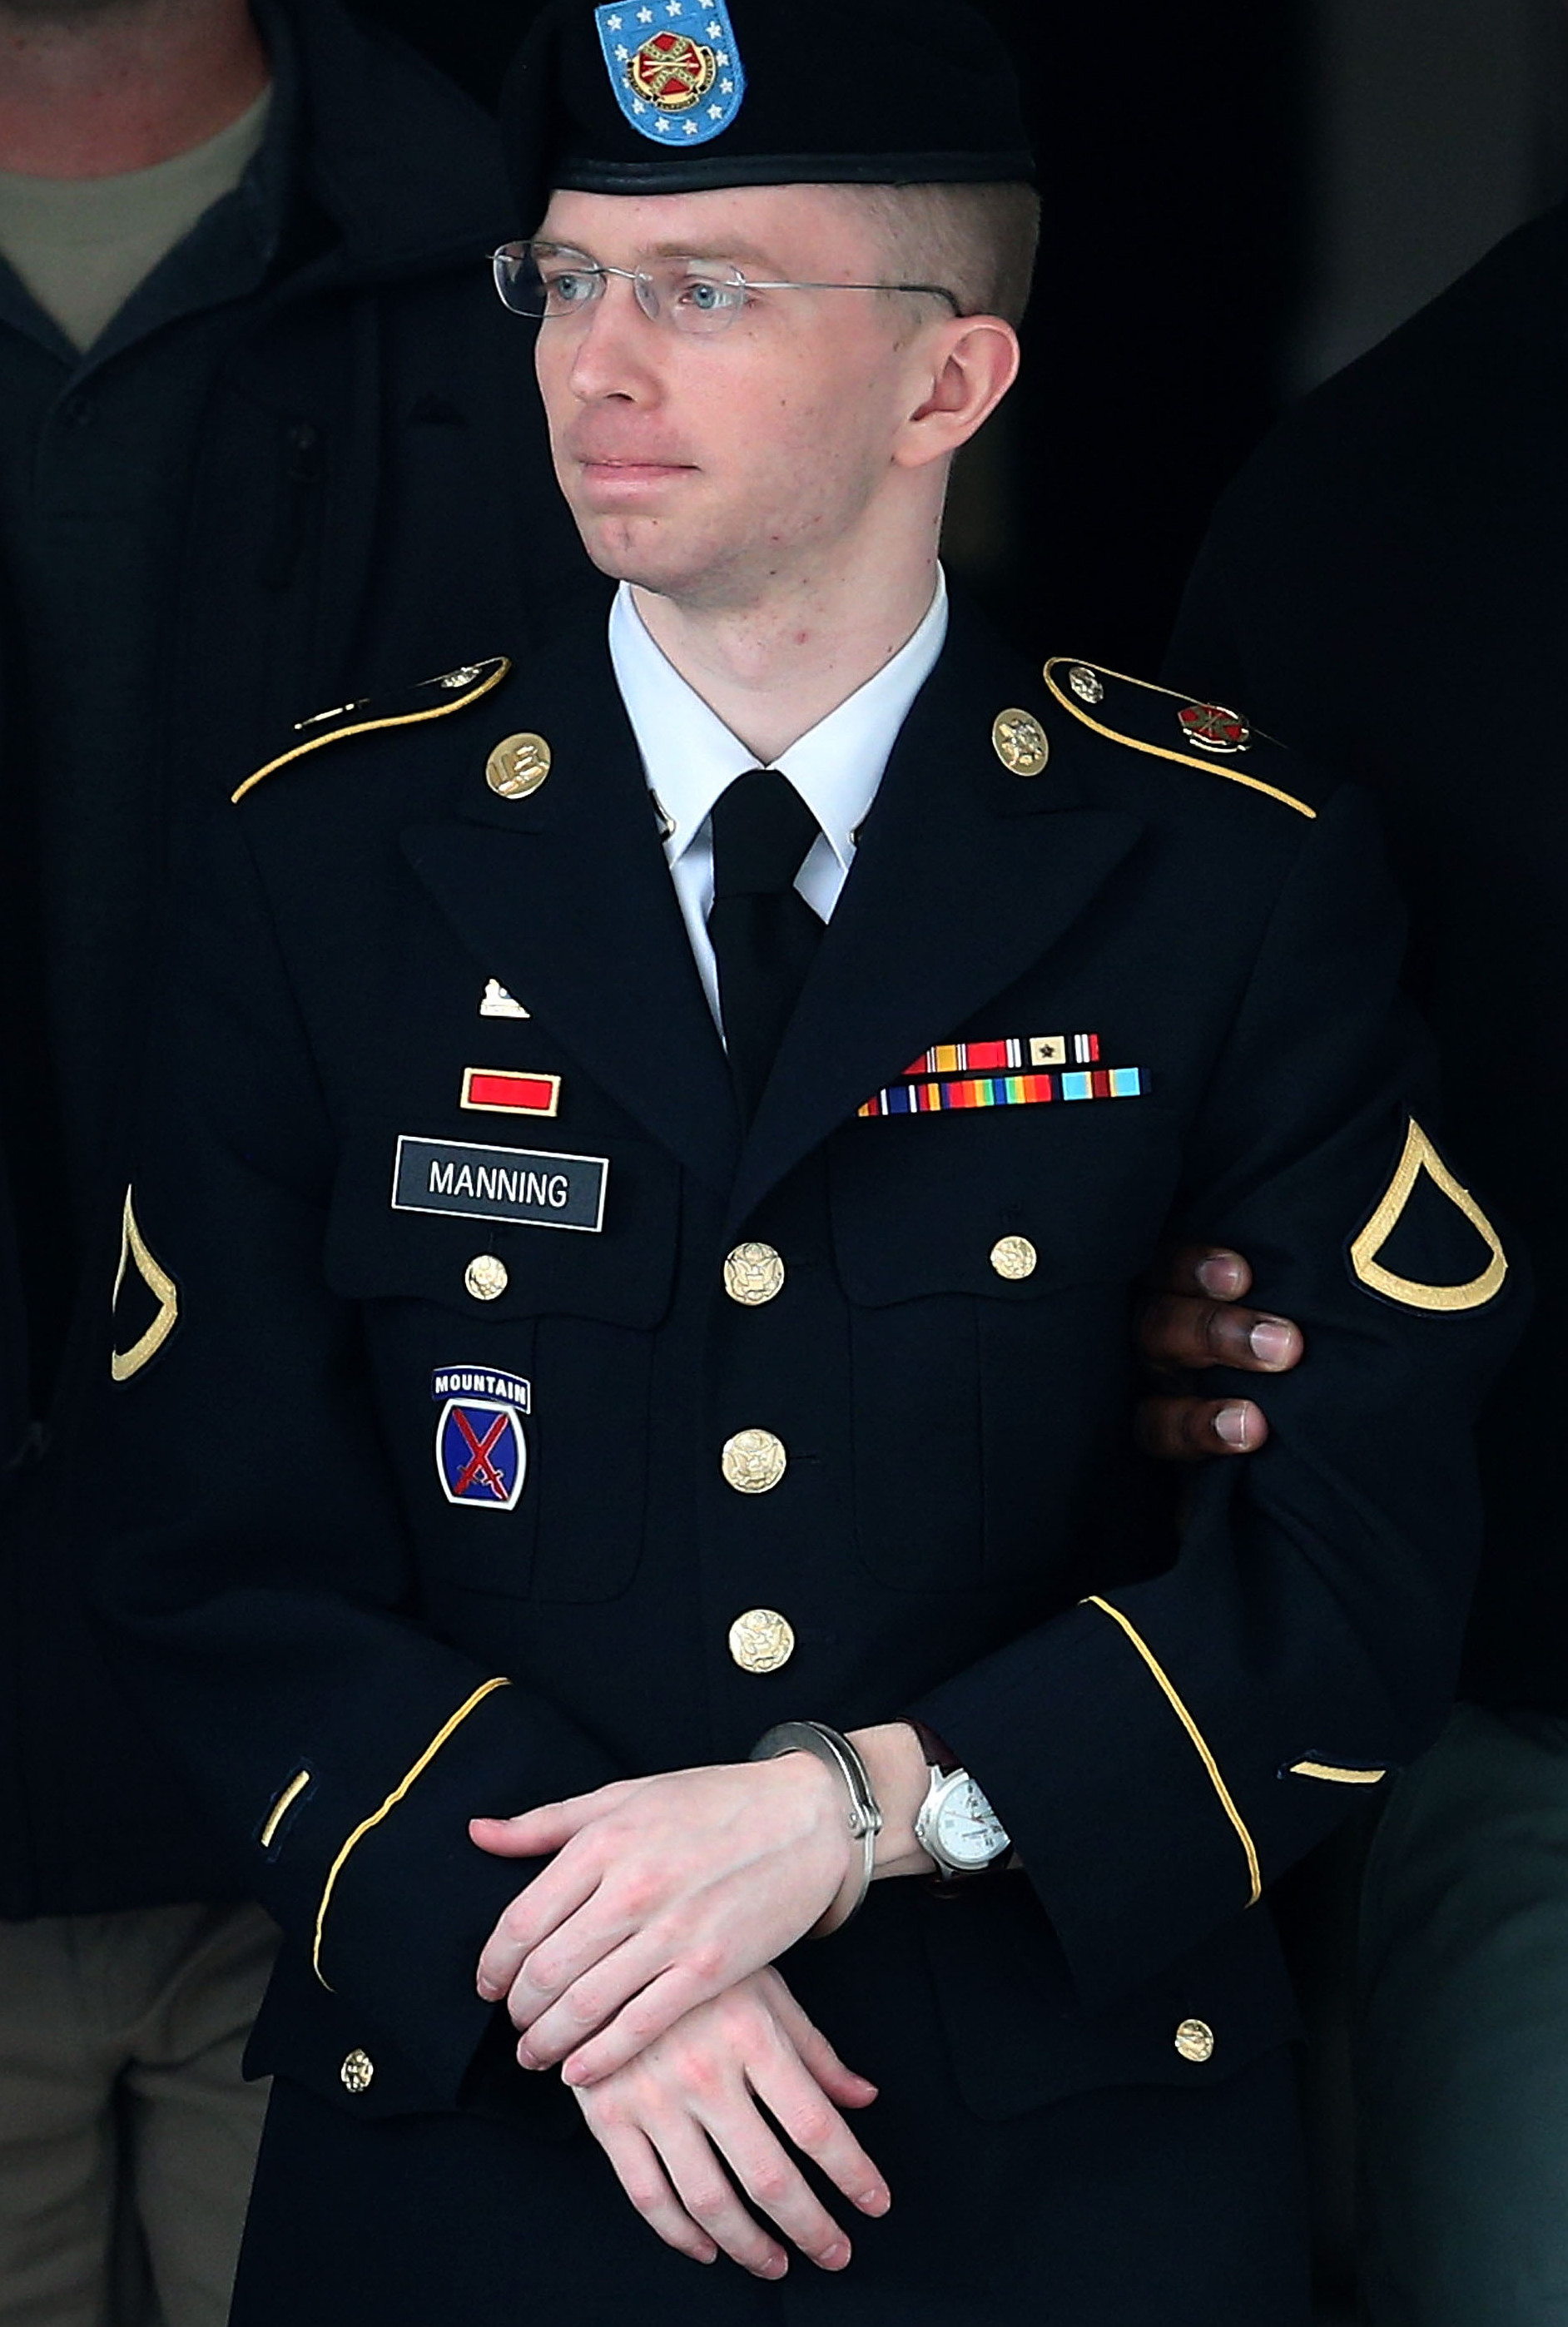 Manning Would Pay For Hormone Treatment, Lawyer Says